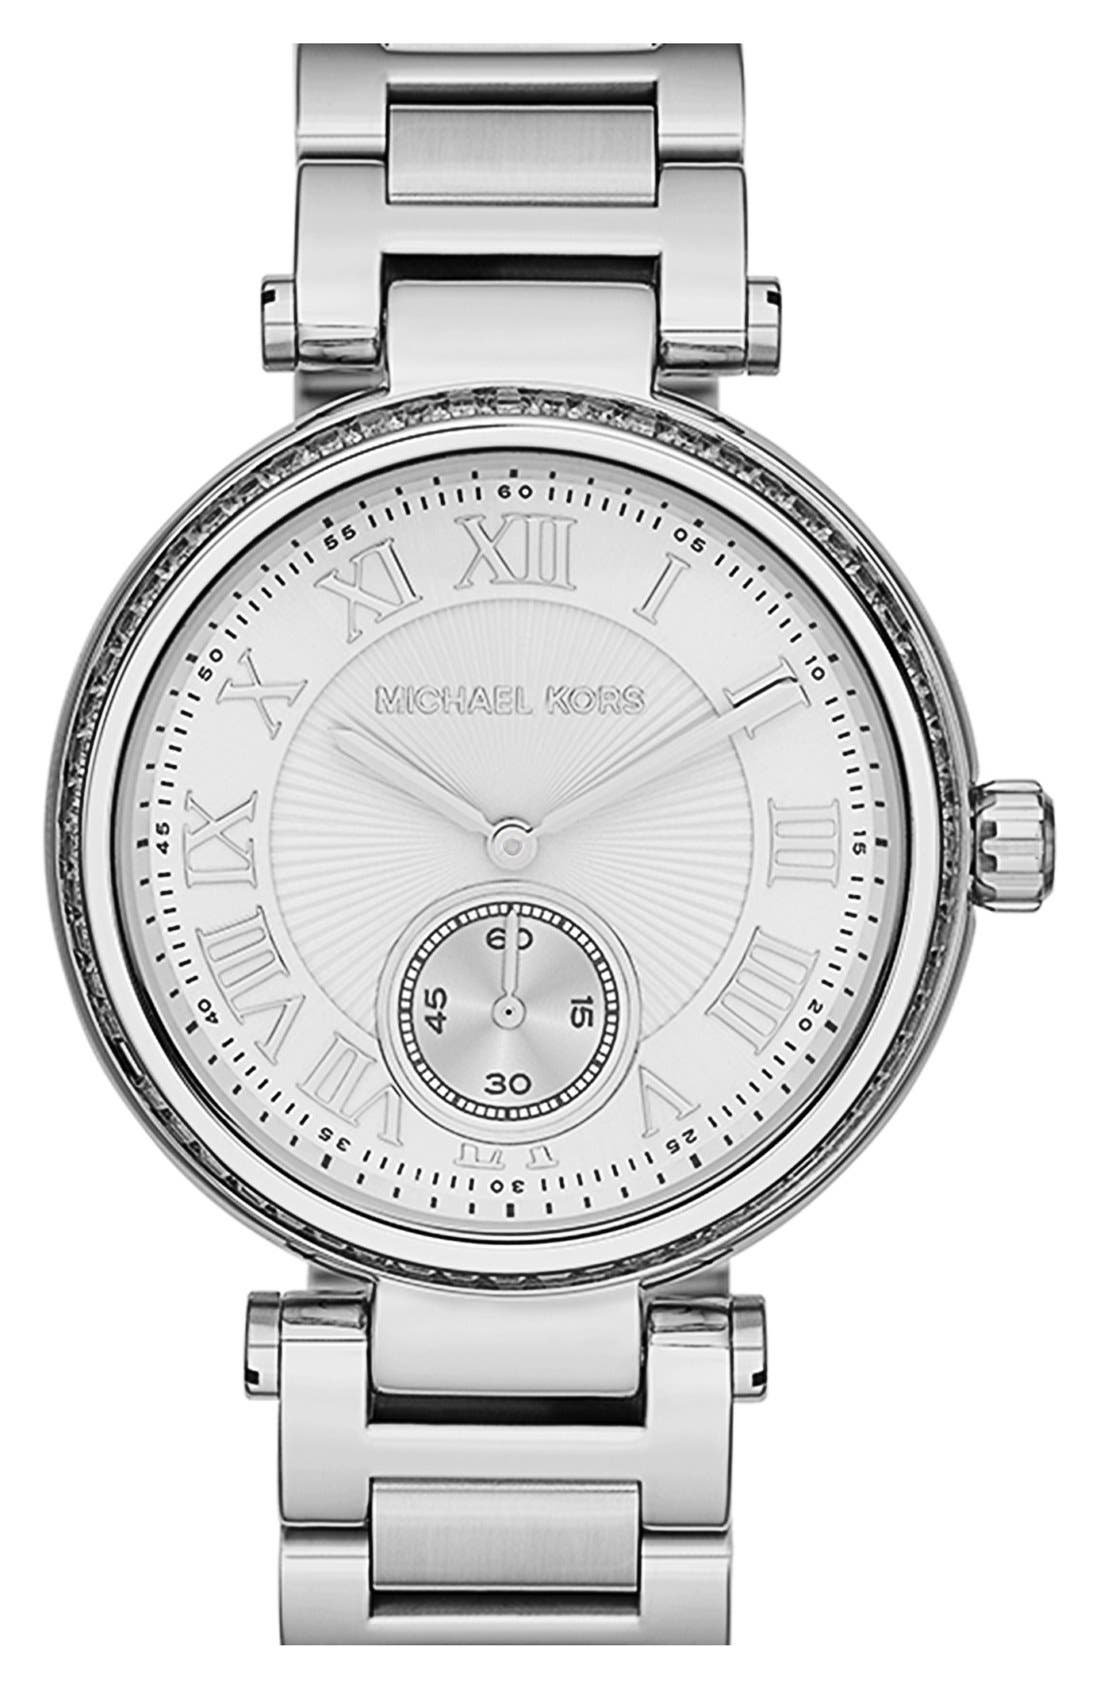 Main Image - Michael Kors 'Skylar' Crystal Bezel Bracelet Watch, 42mm